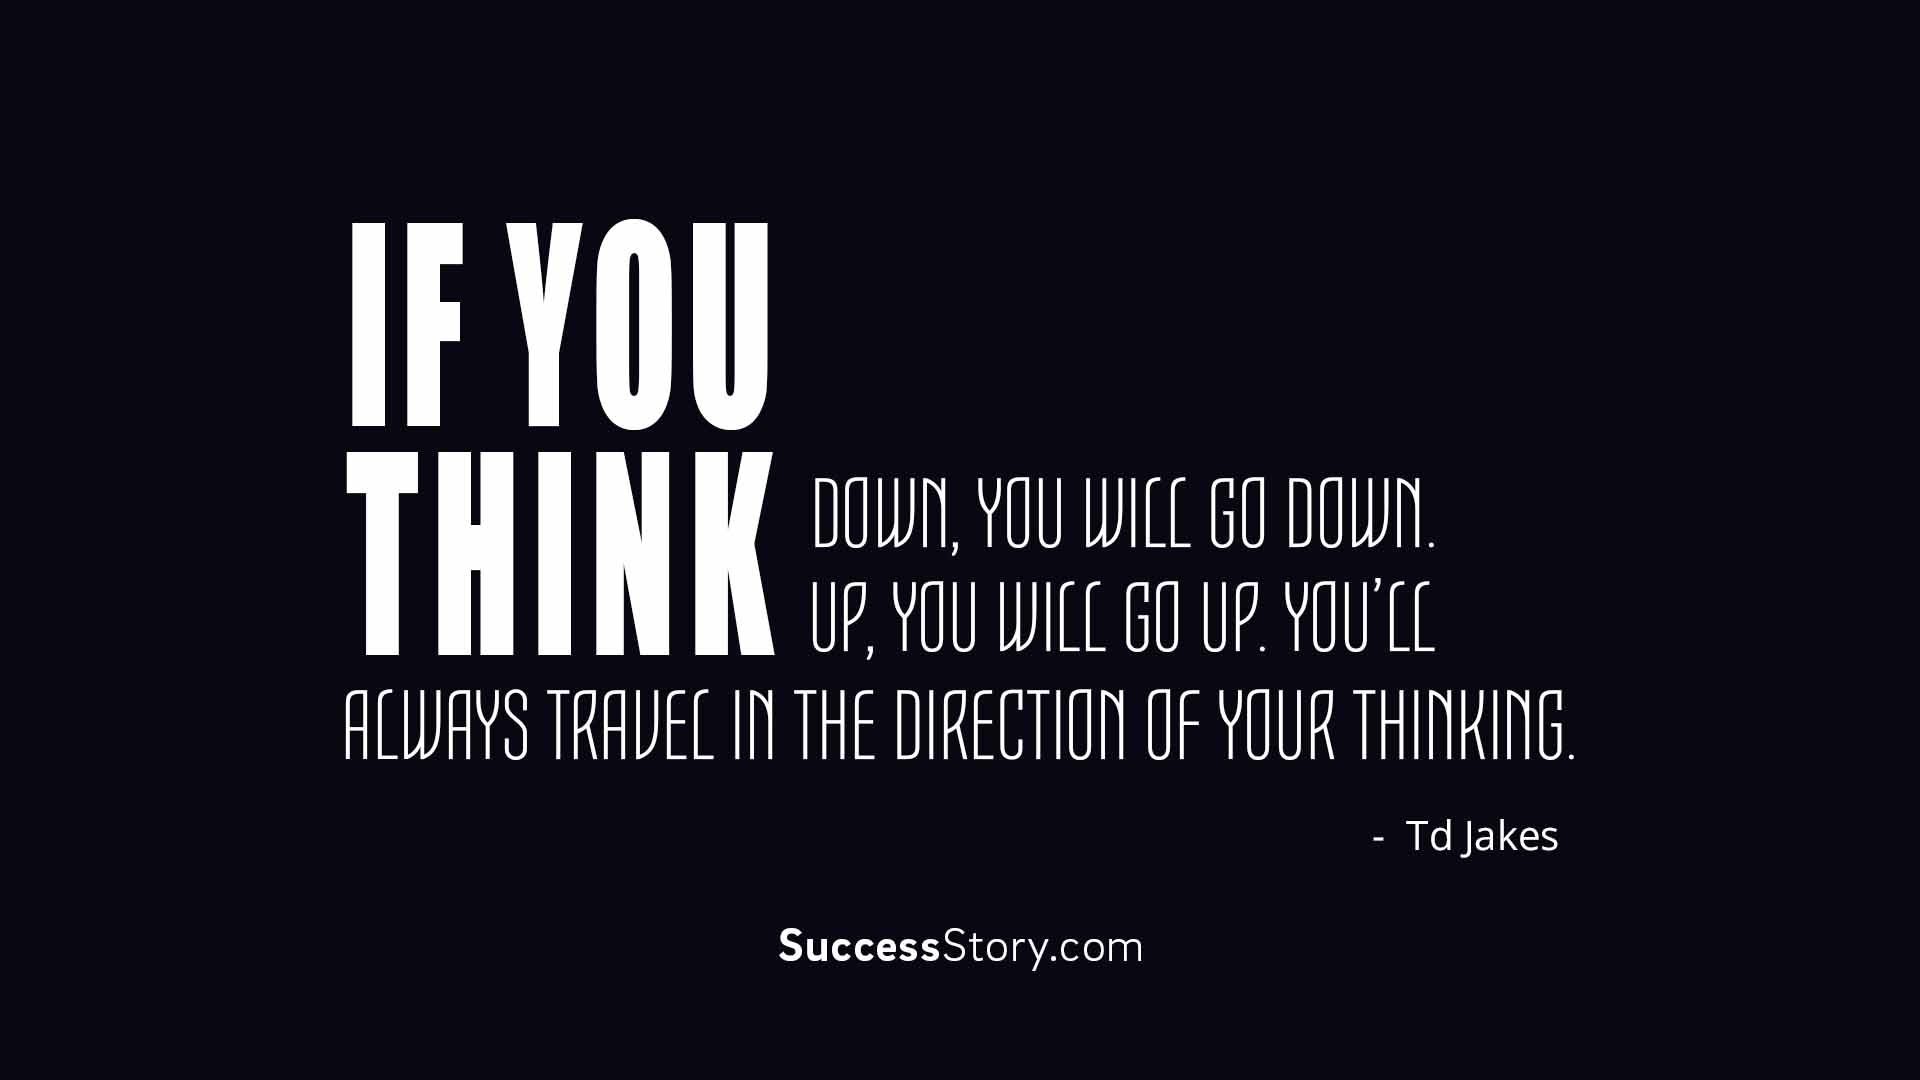 If you think d